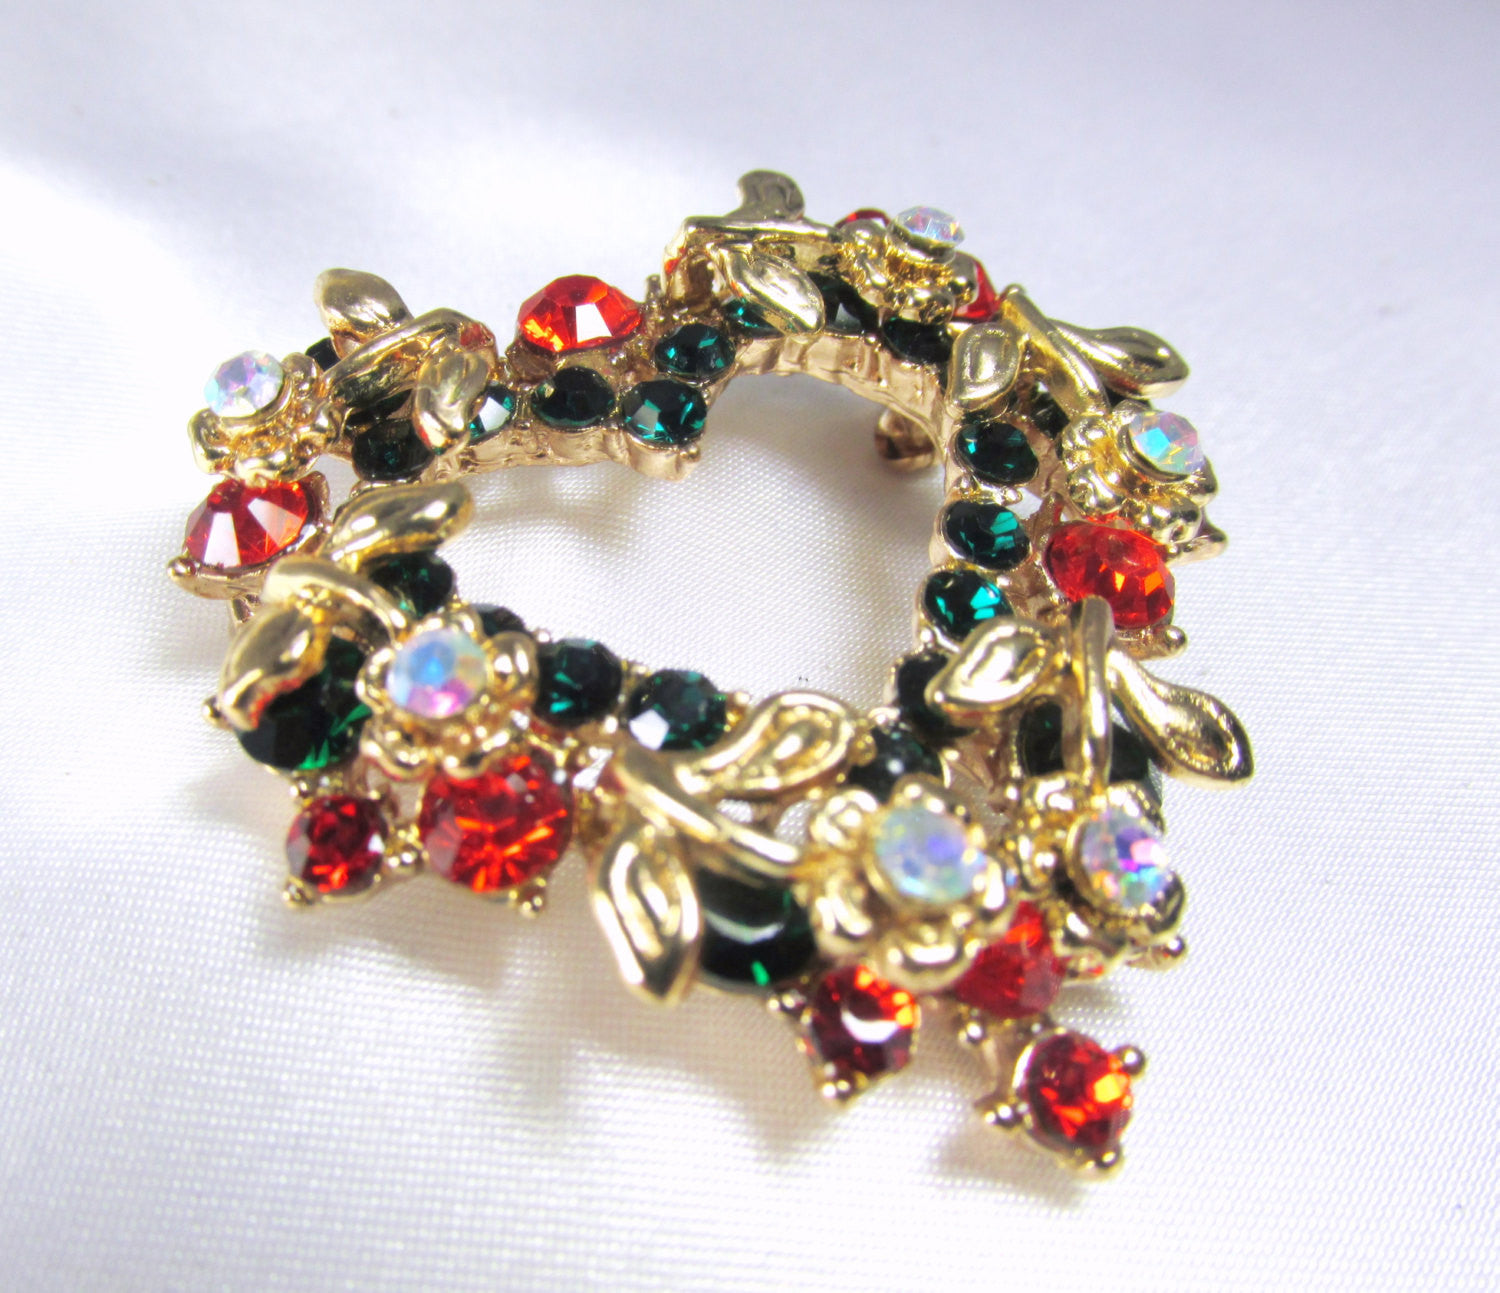 Christmas Heart Wreath Brooch in Green, Red, Crystal AB and Gold - Odyssey Cache - 2